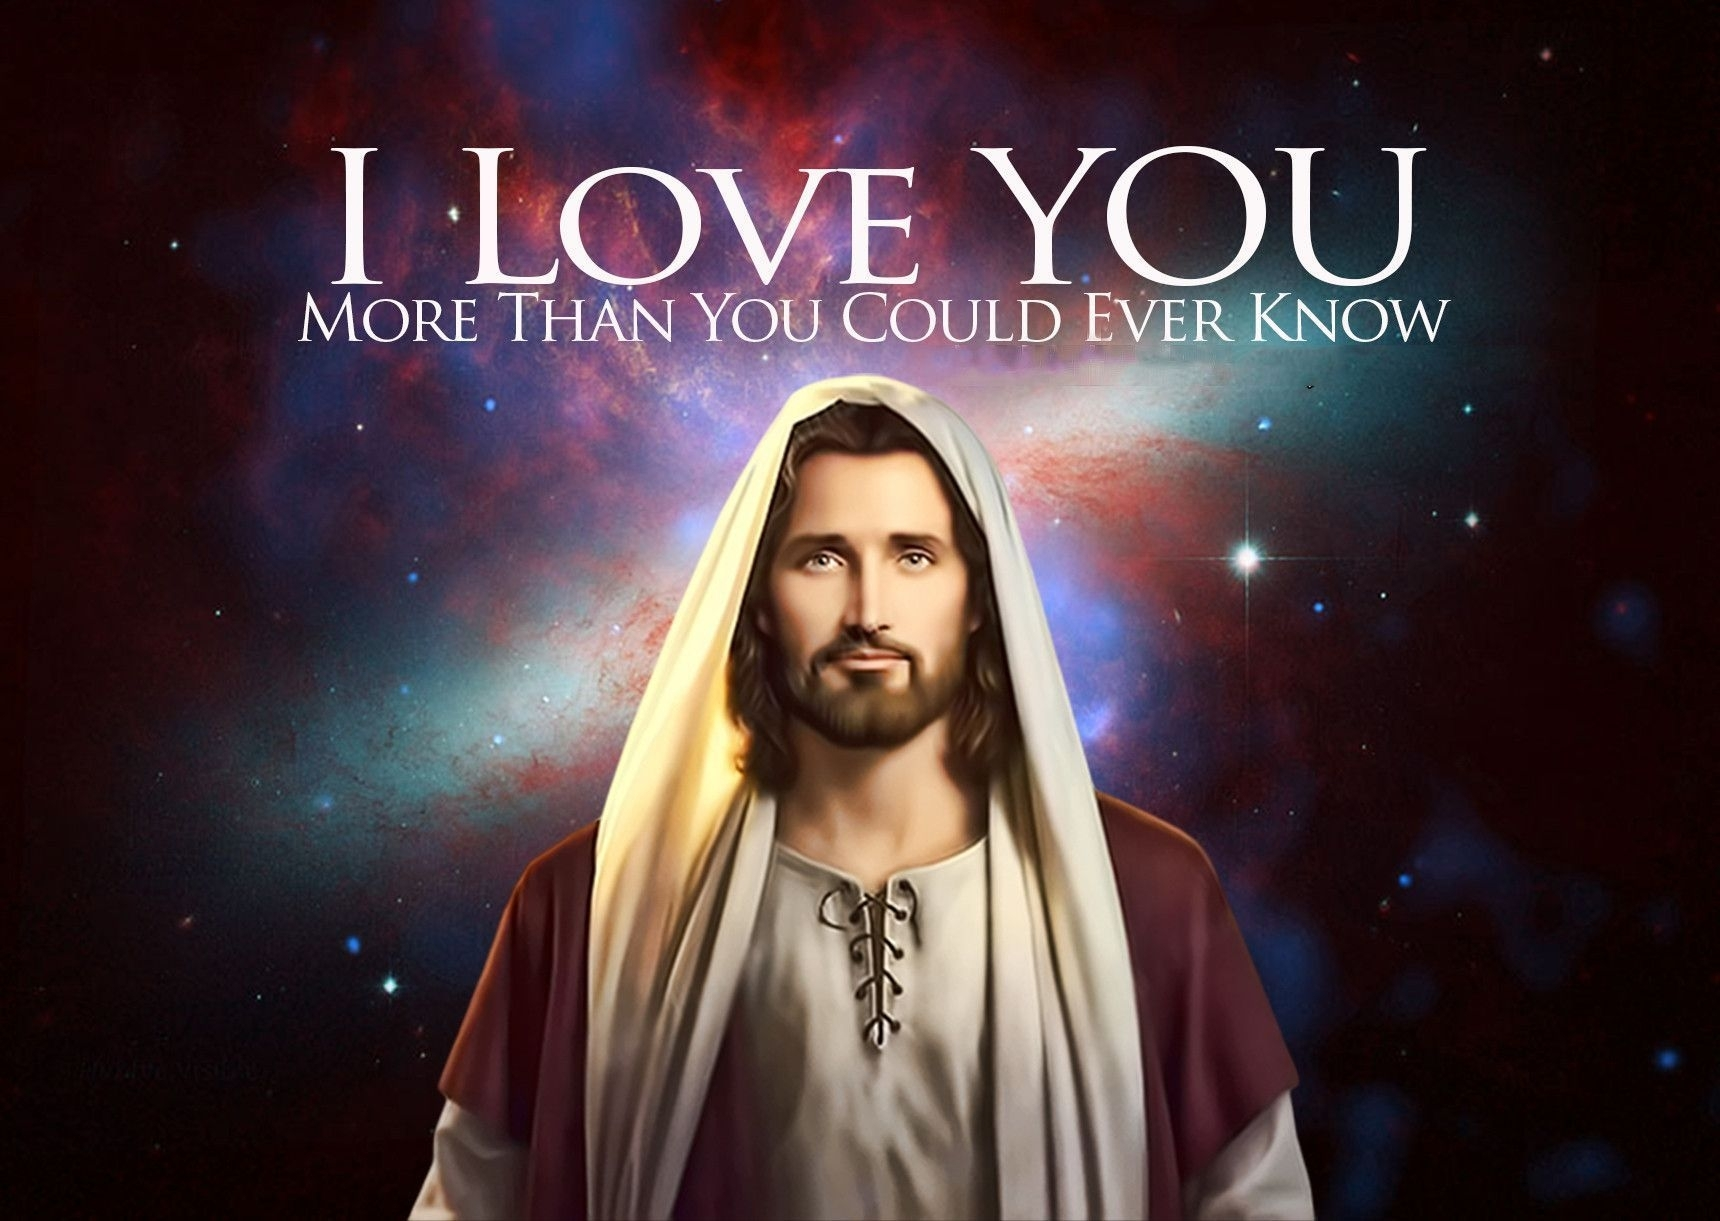 lord jesus quotes hd wallpaper jesus christ wallpapers hd free